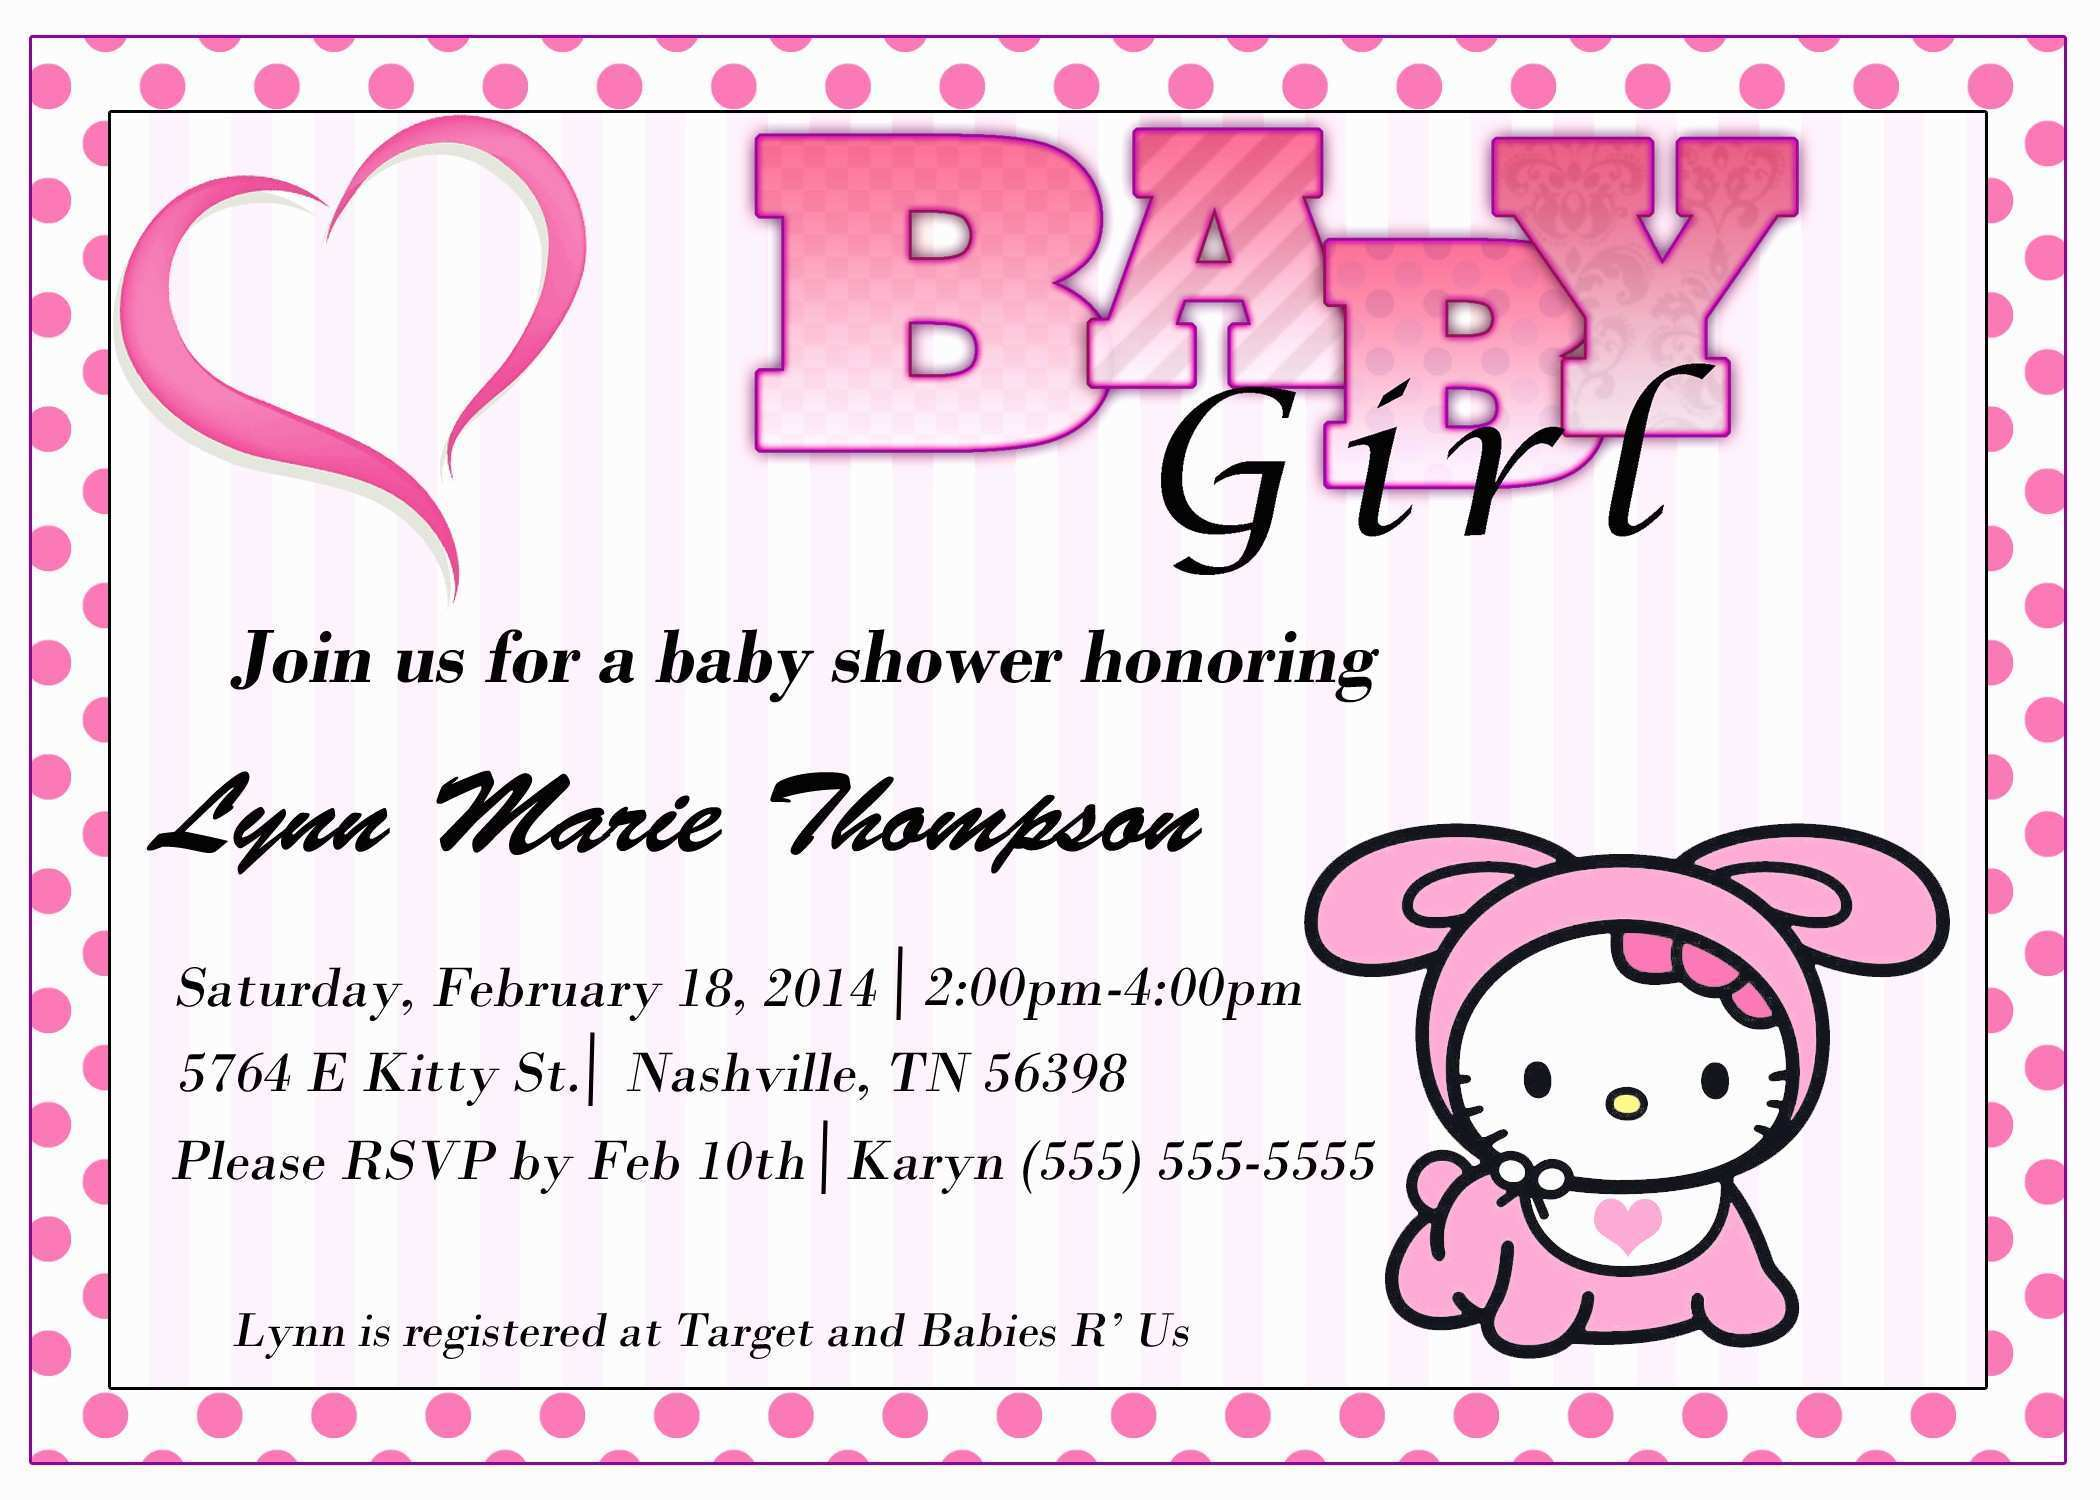 Free Printable Hello Kitty Baby Shower Invitations Pretty Hello - Free Printable Hello Kitty Baby Shower Invitations